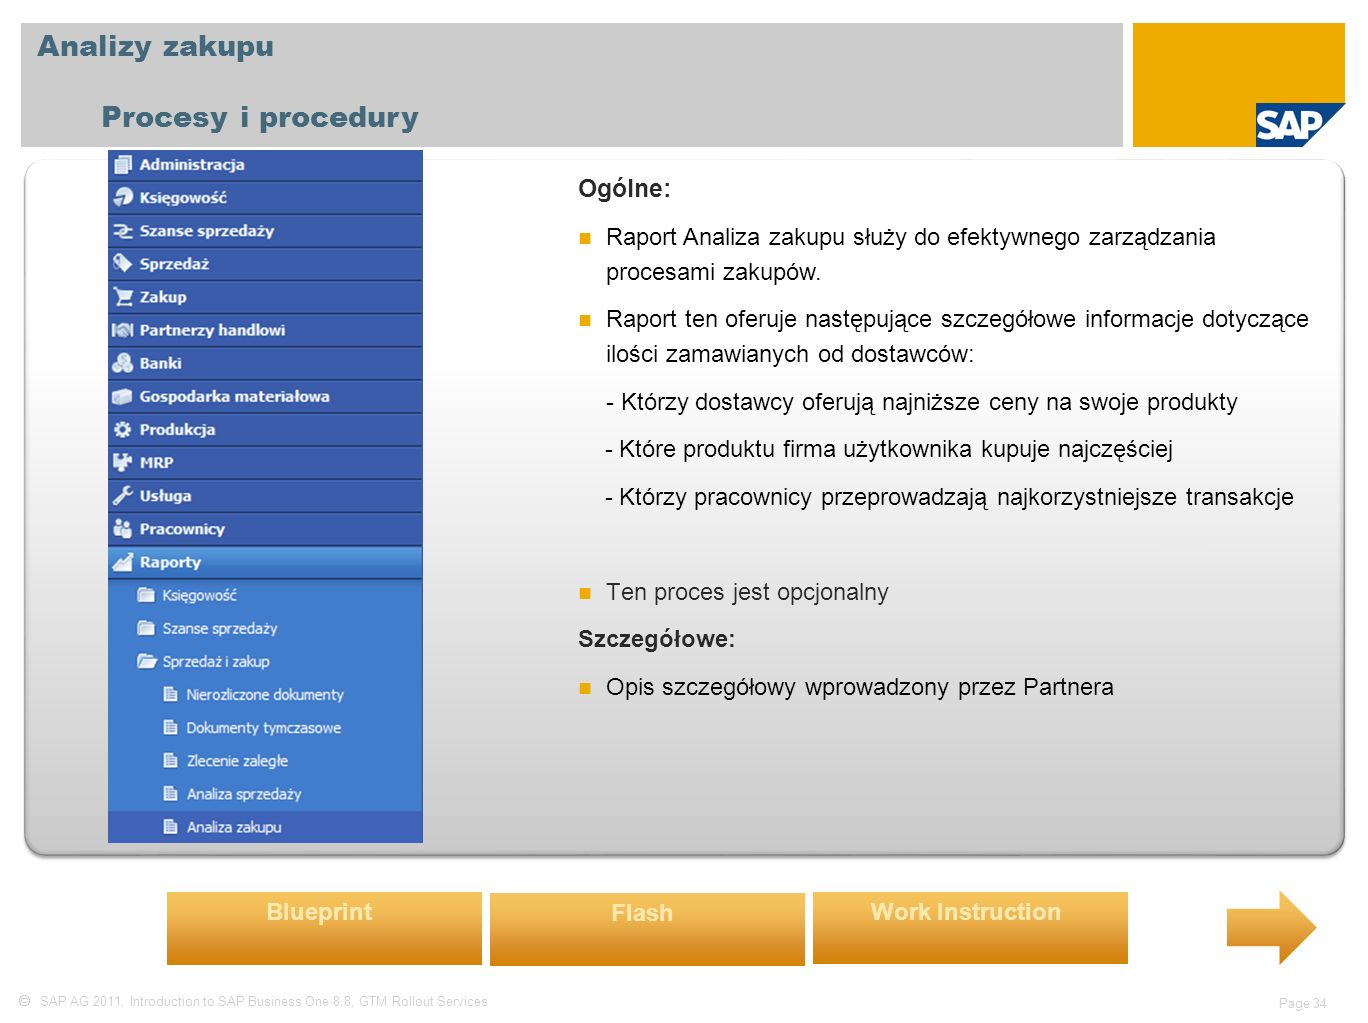  SAP AG 2011, Introduction to SAP Business One 8.8, GTM Rollout Services Page 34 Analizy zakupu Procesy i procedury Ogólne: Raport Analiza zakupu służy do efektywnego zarządzania procesami zakupów.